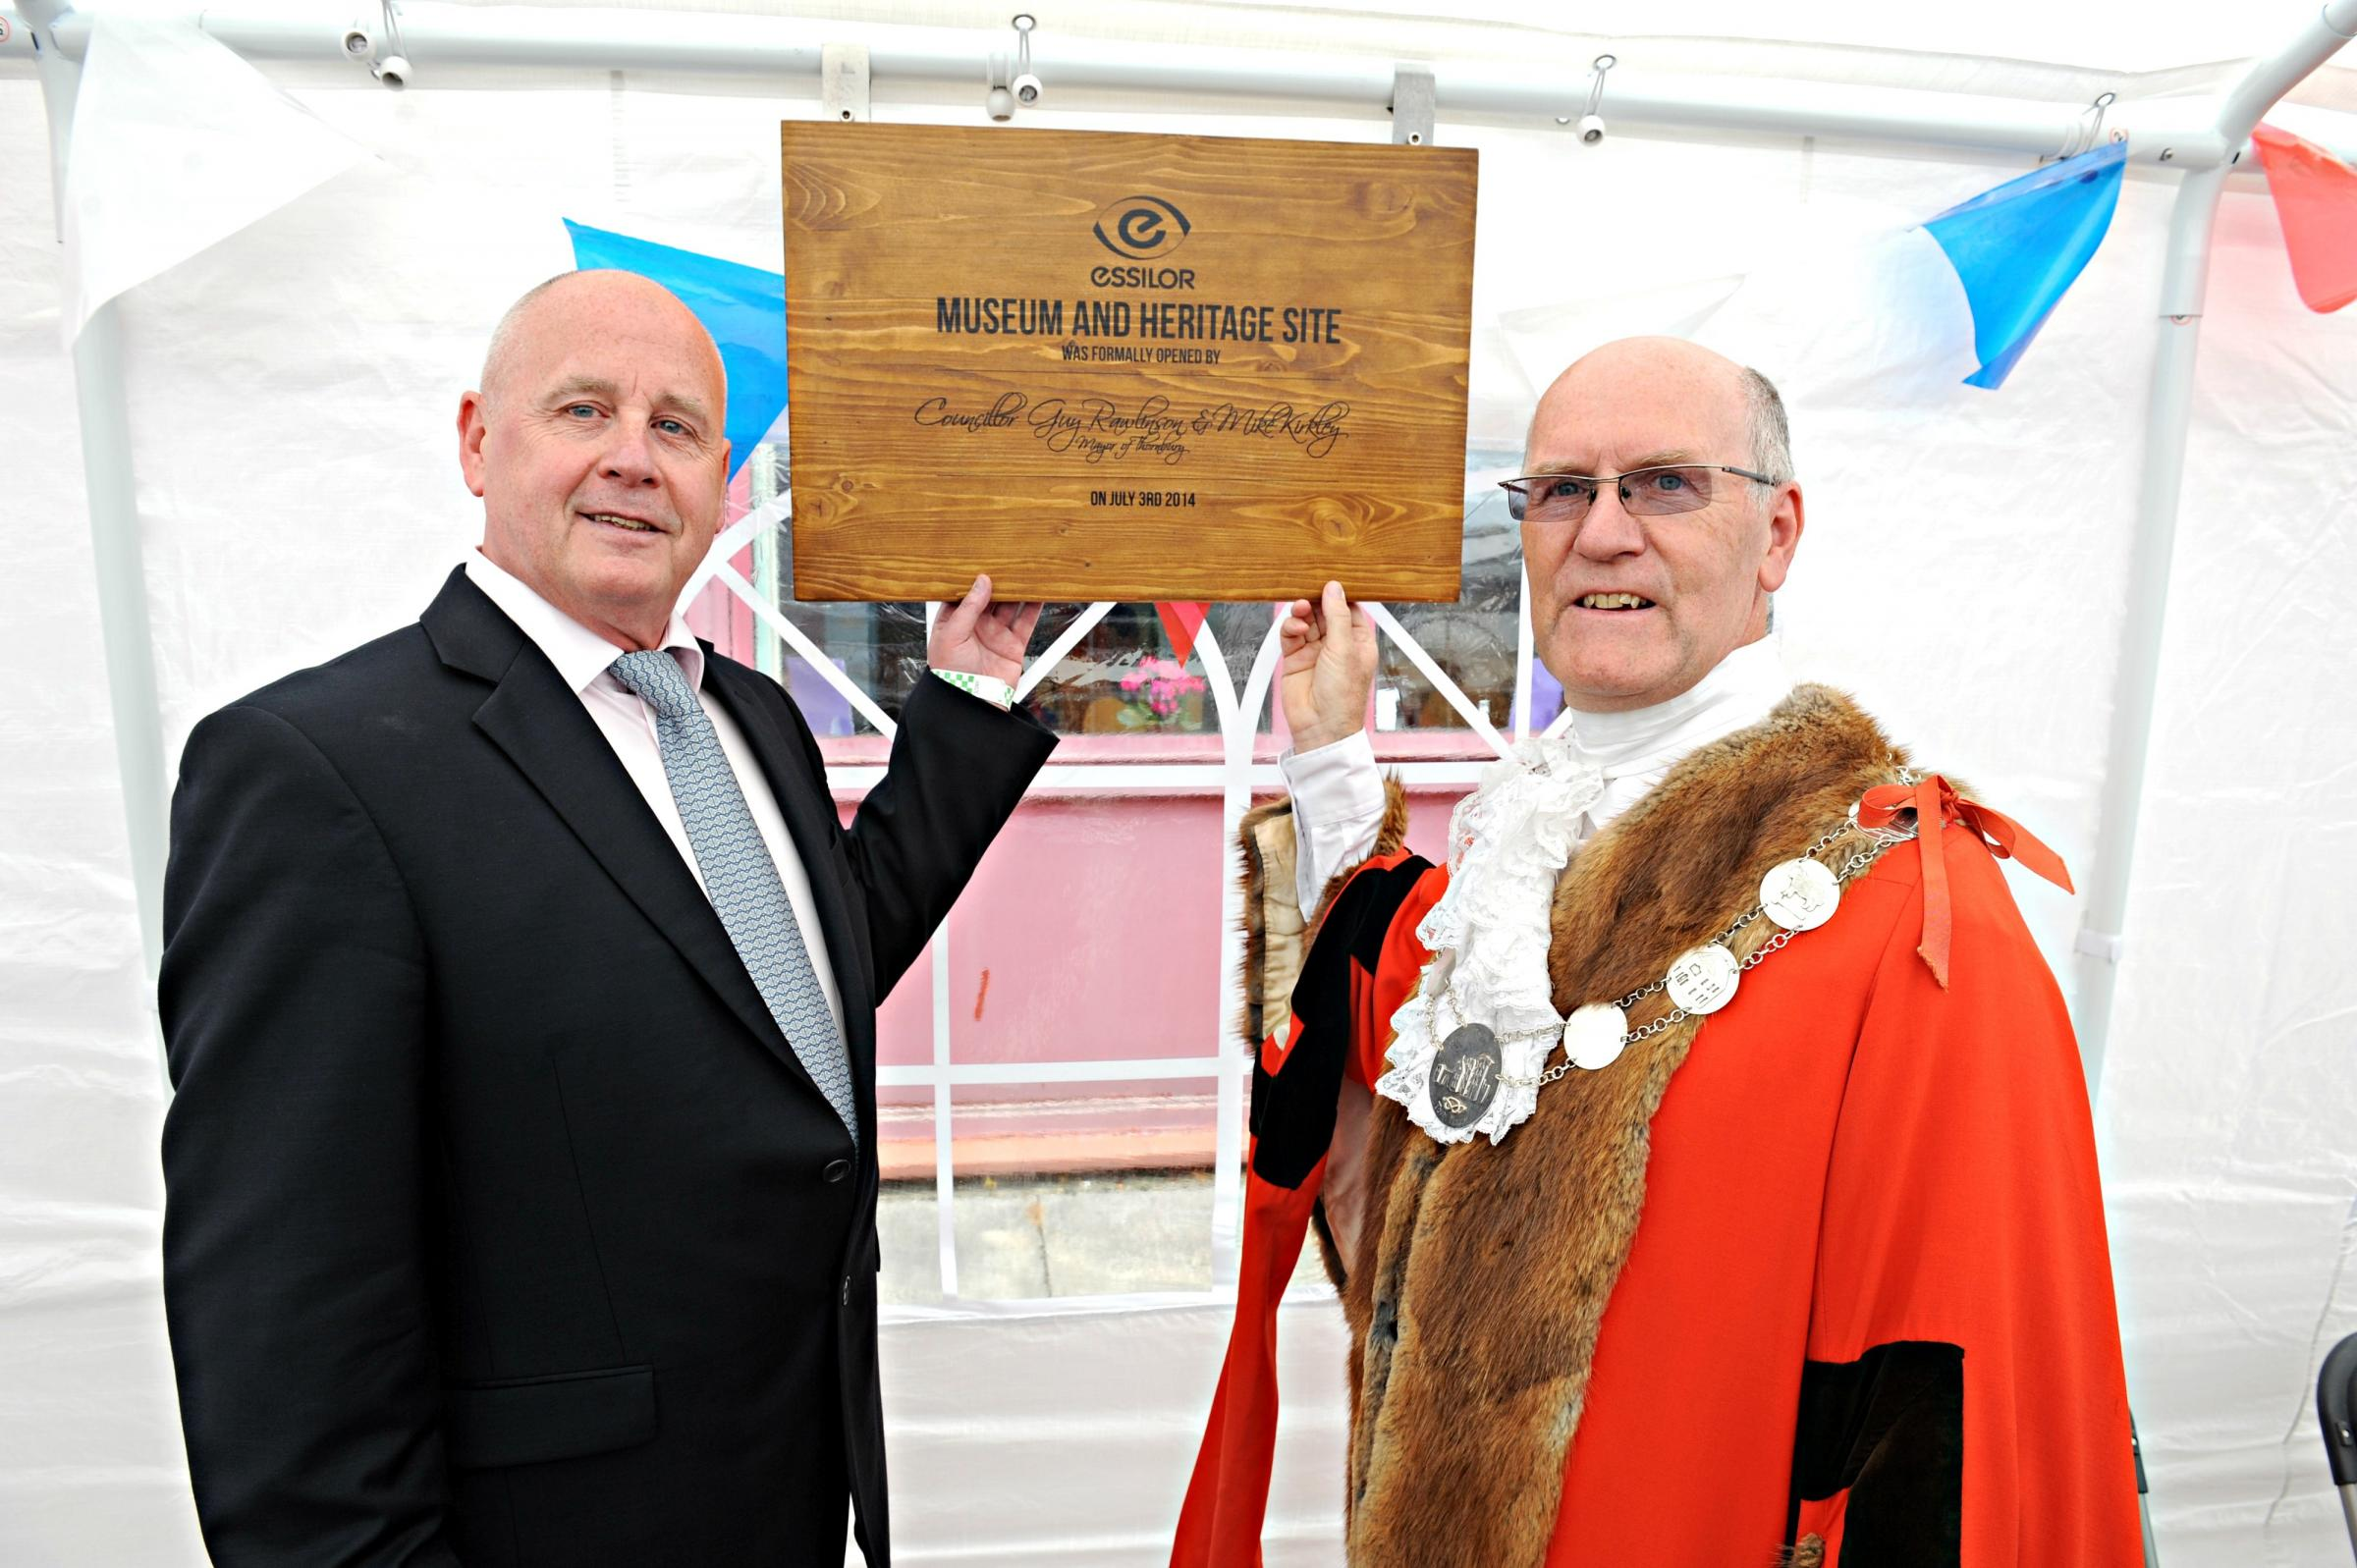 SR_117_001     Thornbury Mayor Cllr Guy Rawlinson unveiled a plaque with Mike Kirkley, Managing Director of Essilor in Thornbury, to celebrate the companies 40th anniversary in